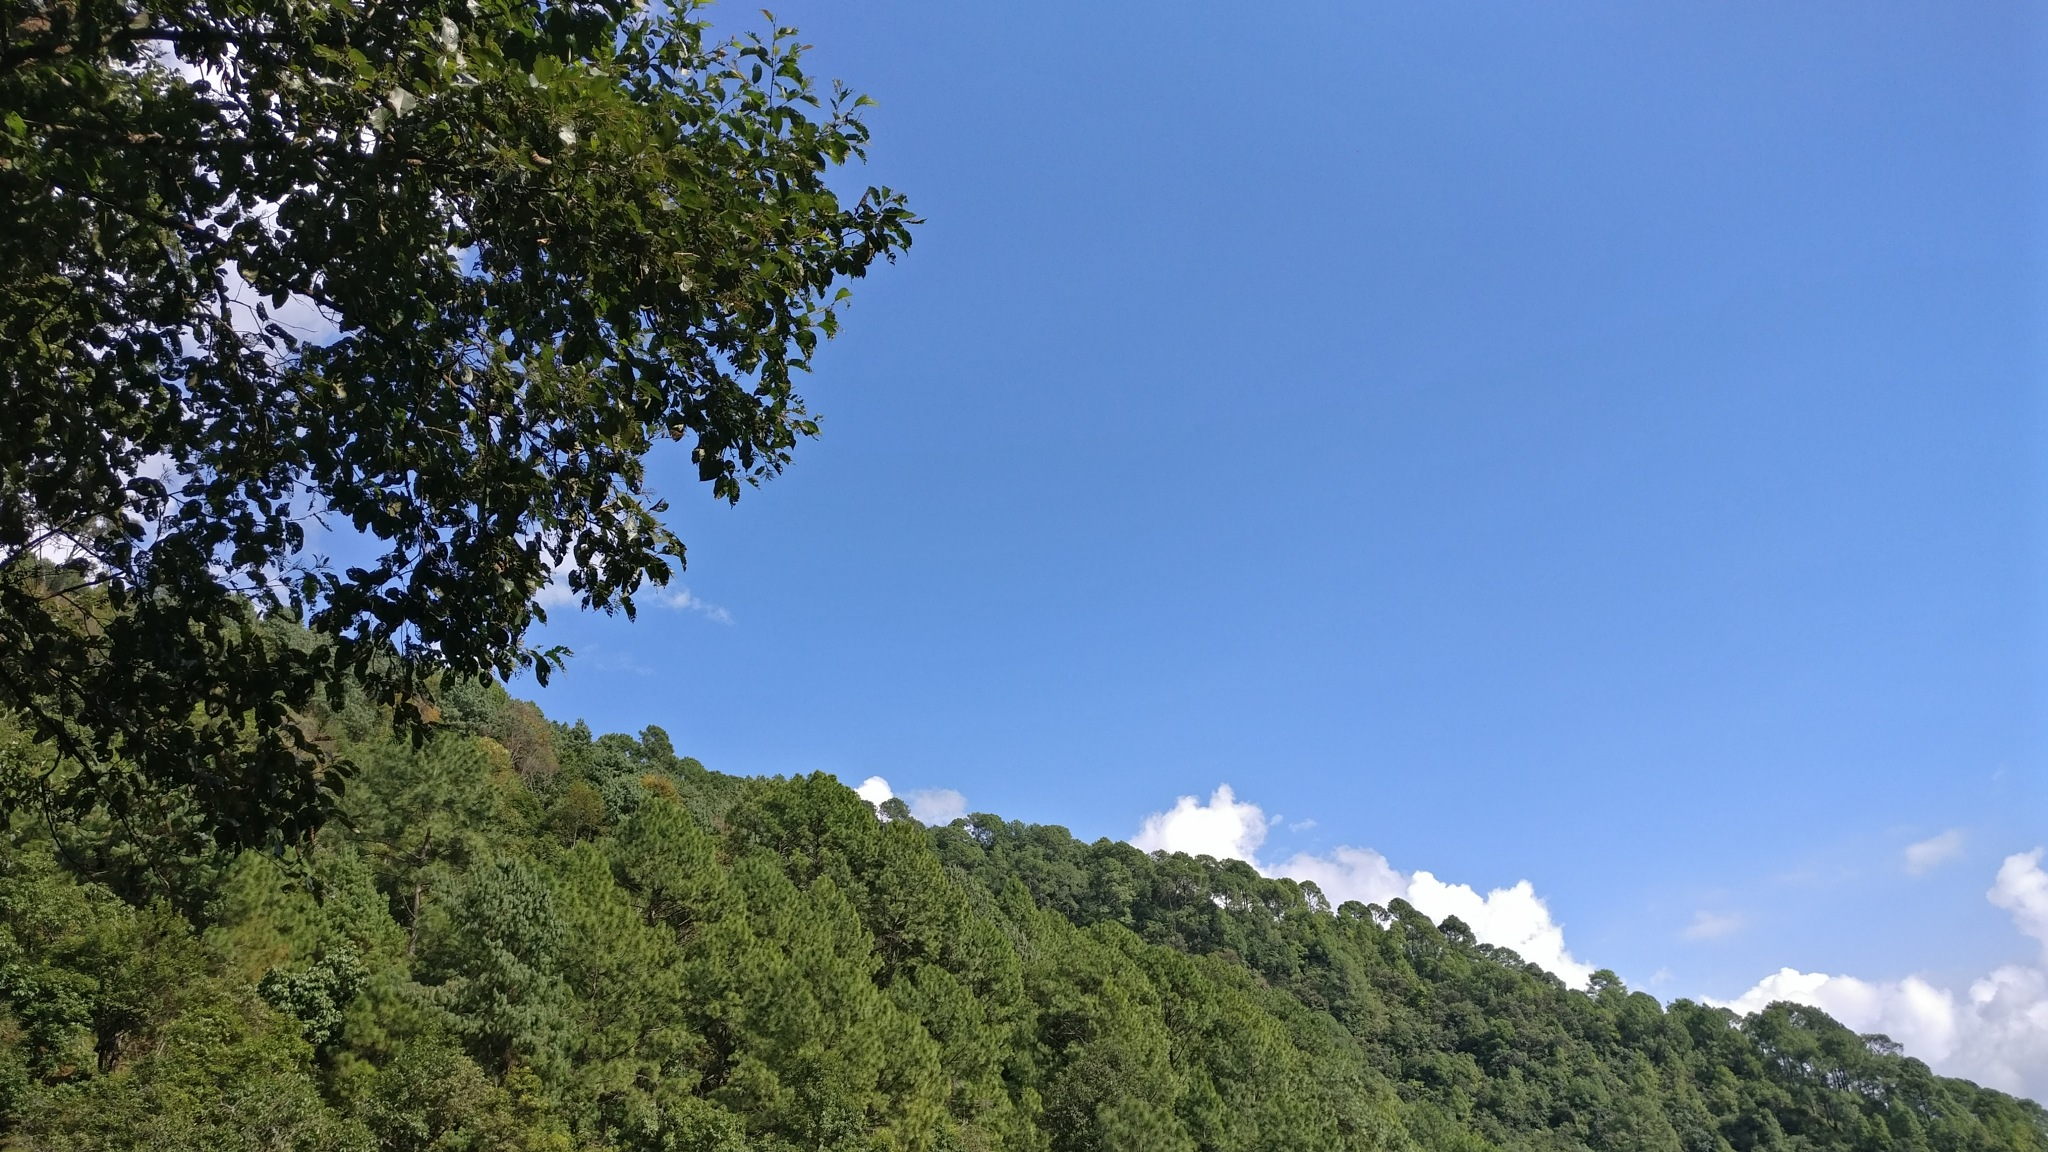 hilly region by dpenstha1st